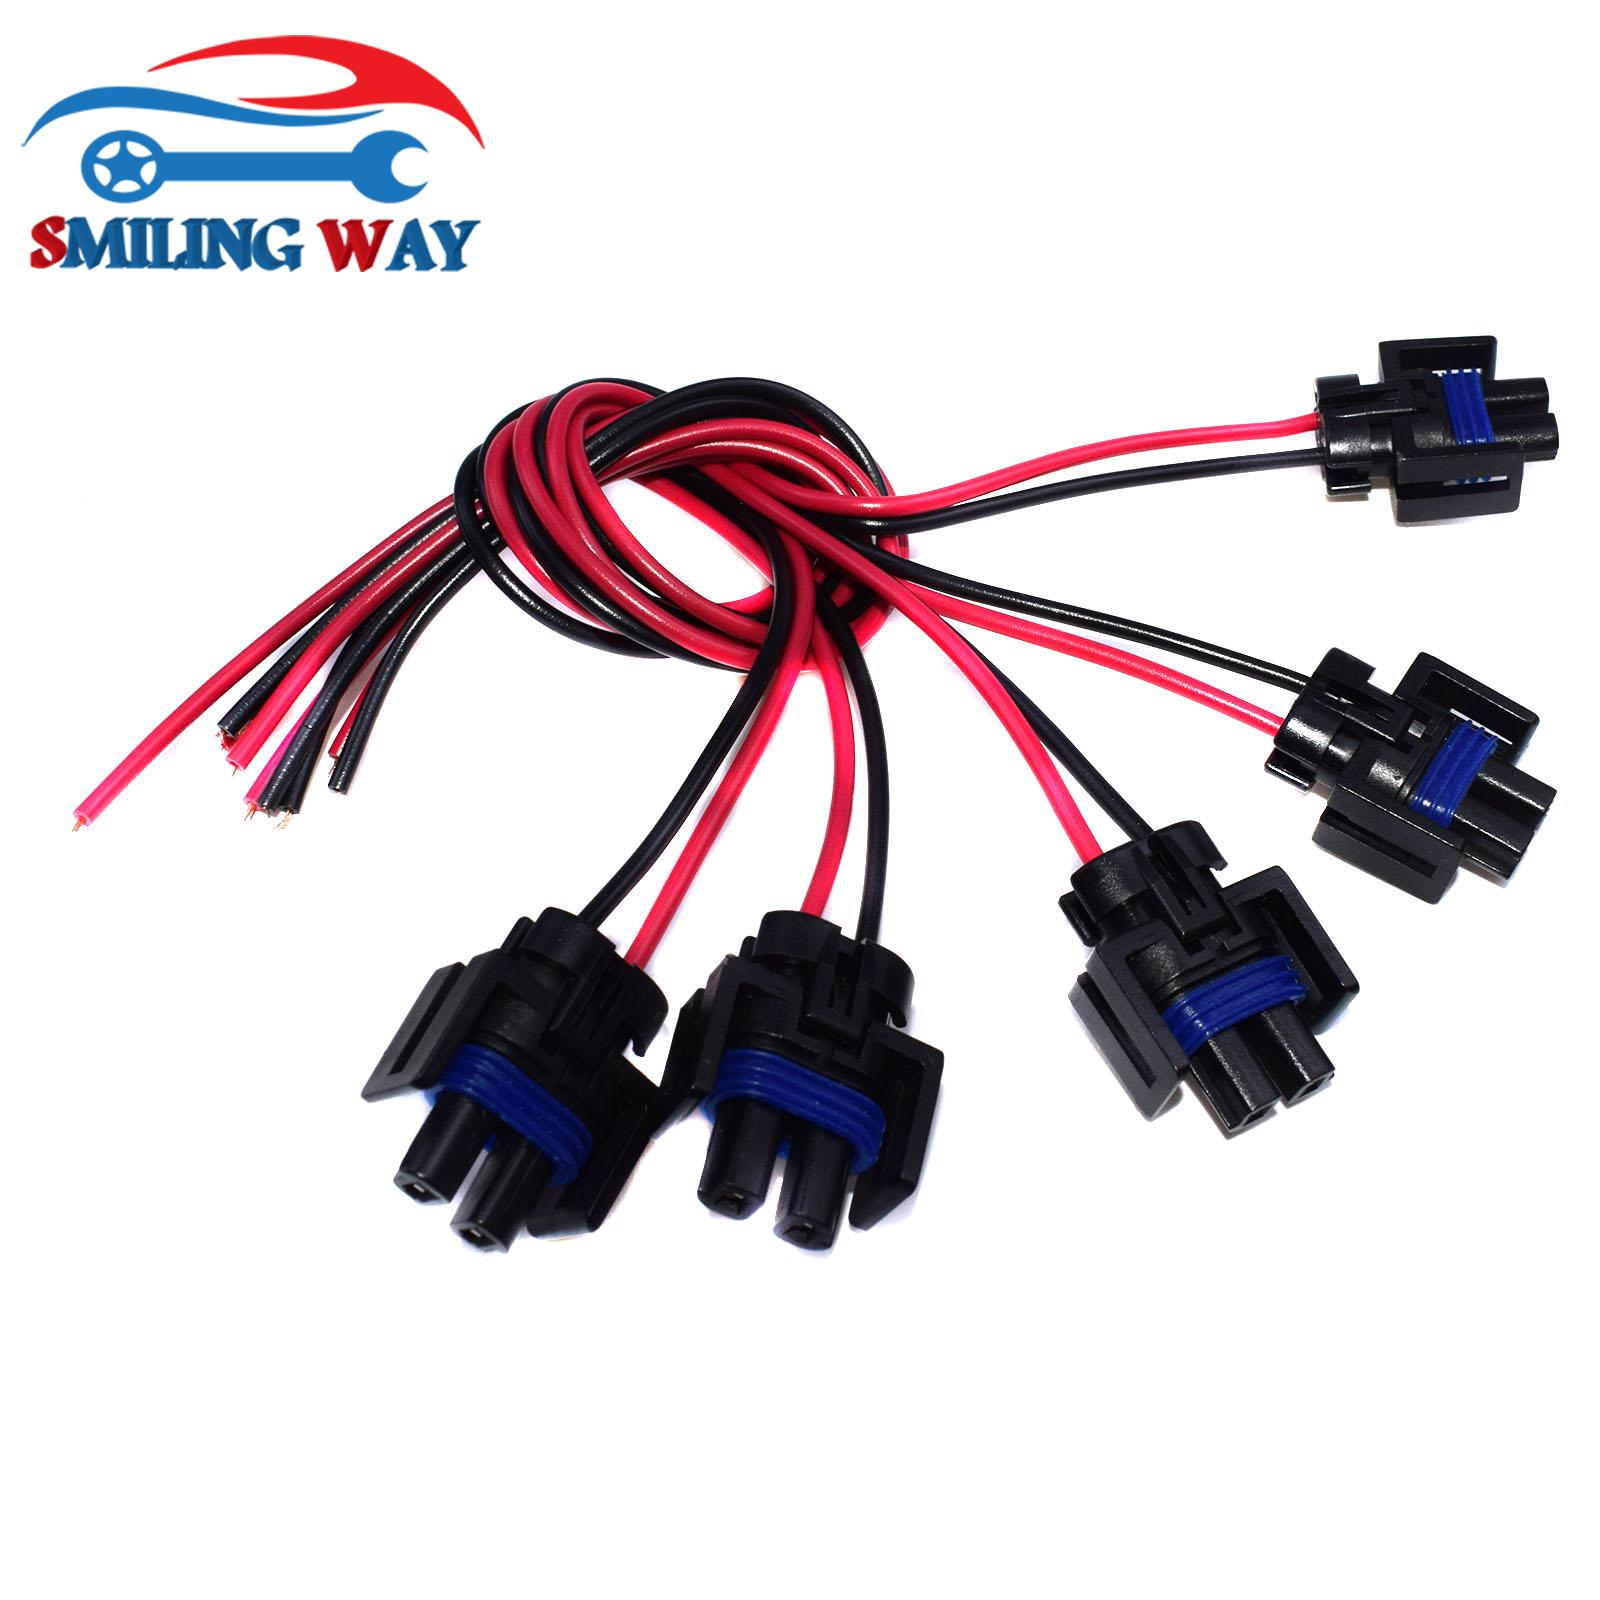 Fuel Injector Connector Harness Pigtail Replaces 1P1575 For Chevrolet GMC Buick